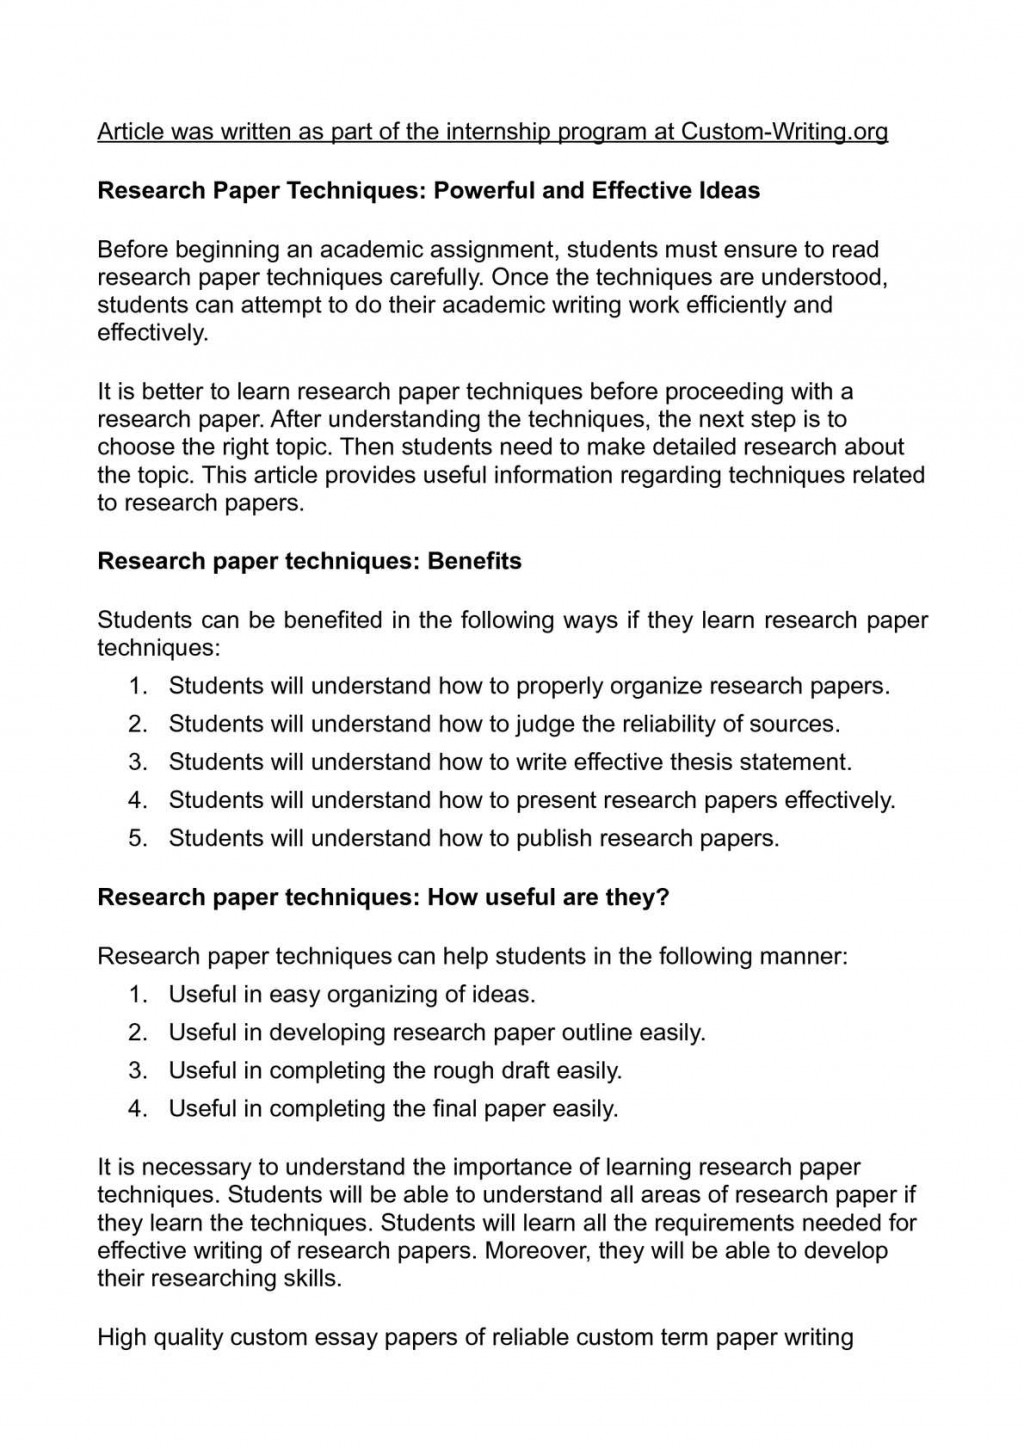 003 Ideas For Research Paper Fascinating Papers In Computer Science Middle School Large